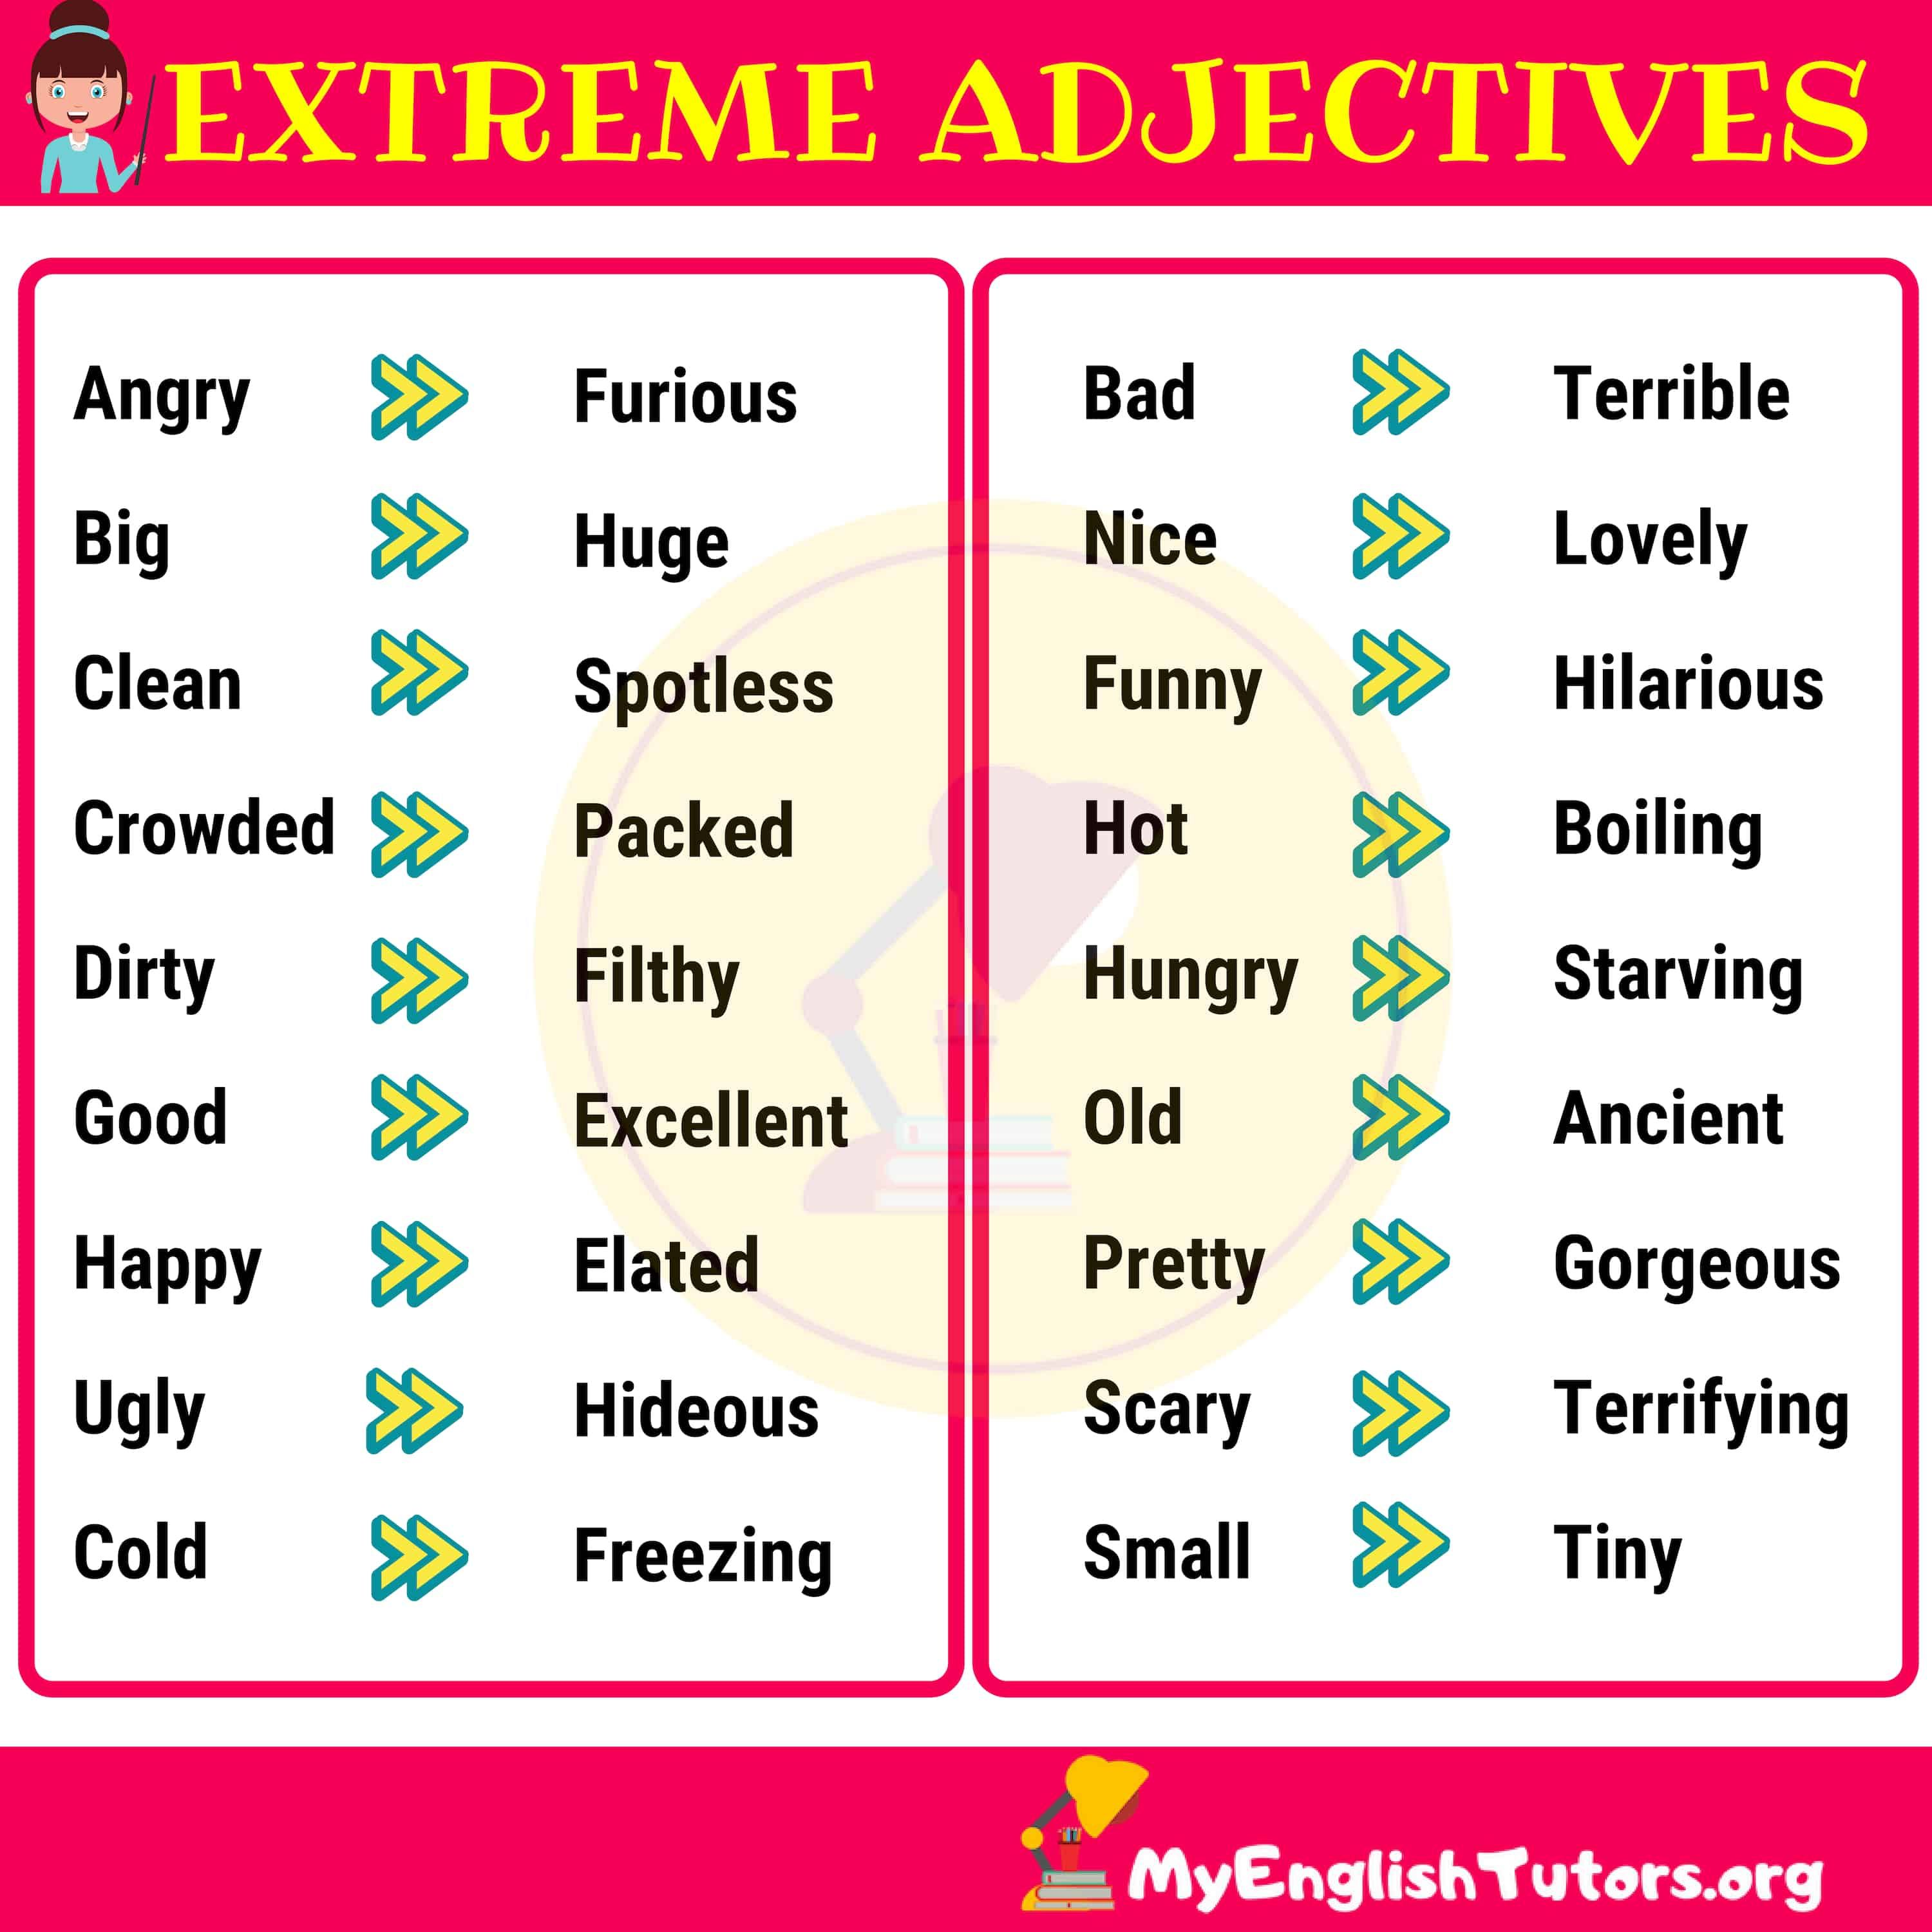 Extreme Adjectives   Adjectives [ 3000 x 3000 Pixel ]